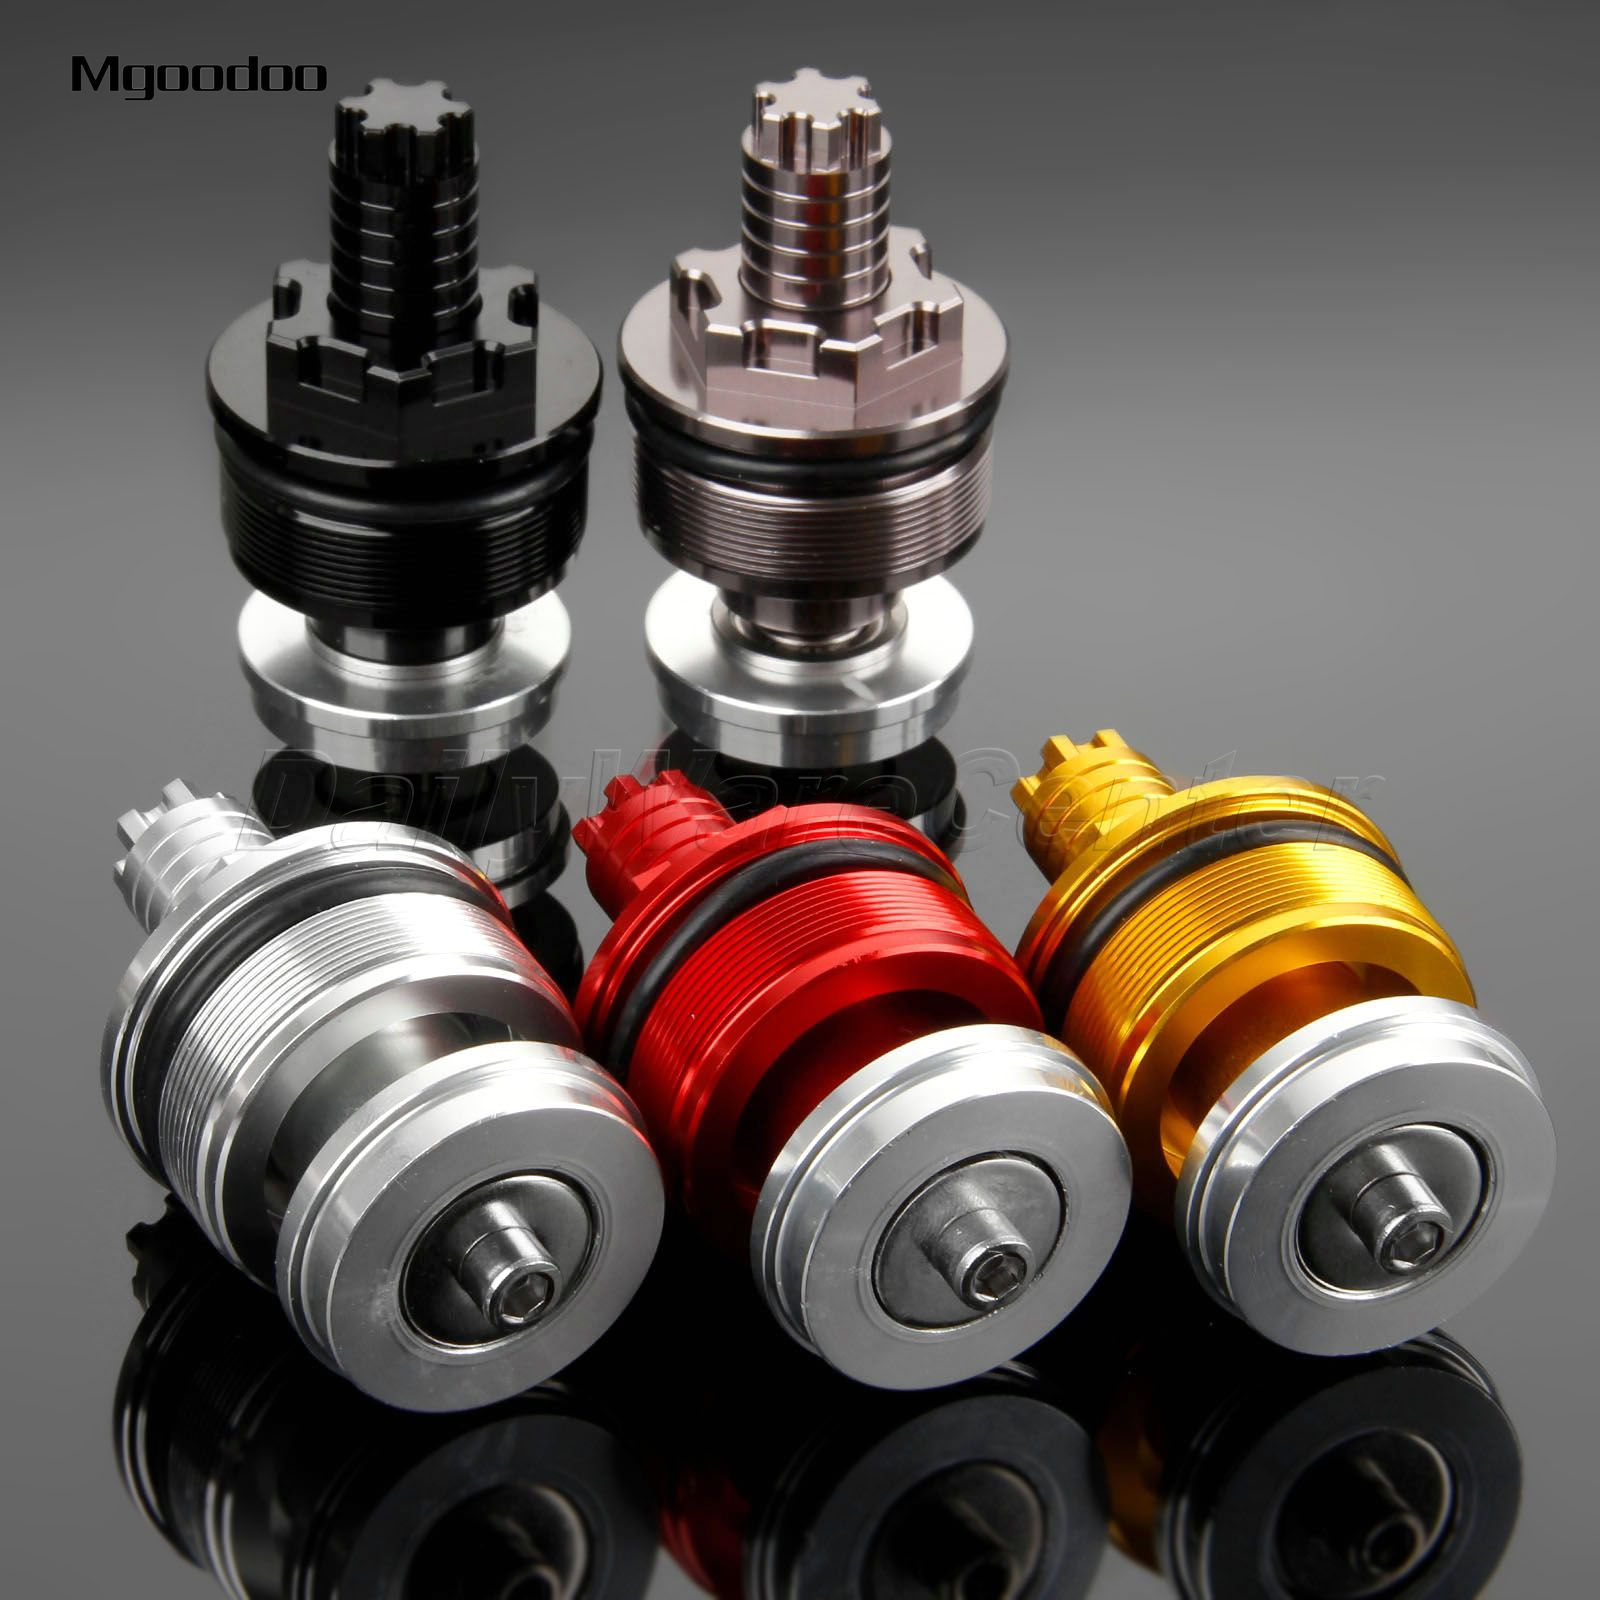 New 2Pc 41MM Motorcycle Preload Adjusters Fork Bolts Cap CNC Aluminum For Yamaha YZF R3 2015 2016 YZF R25 2013 2014 High Quality